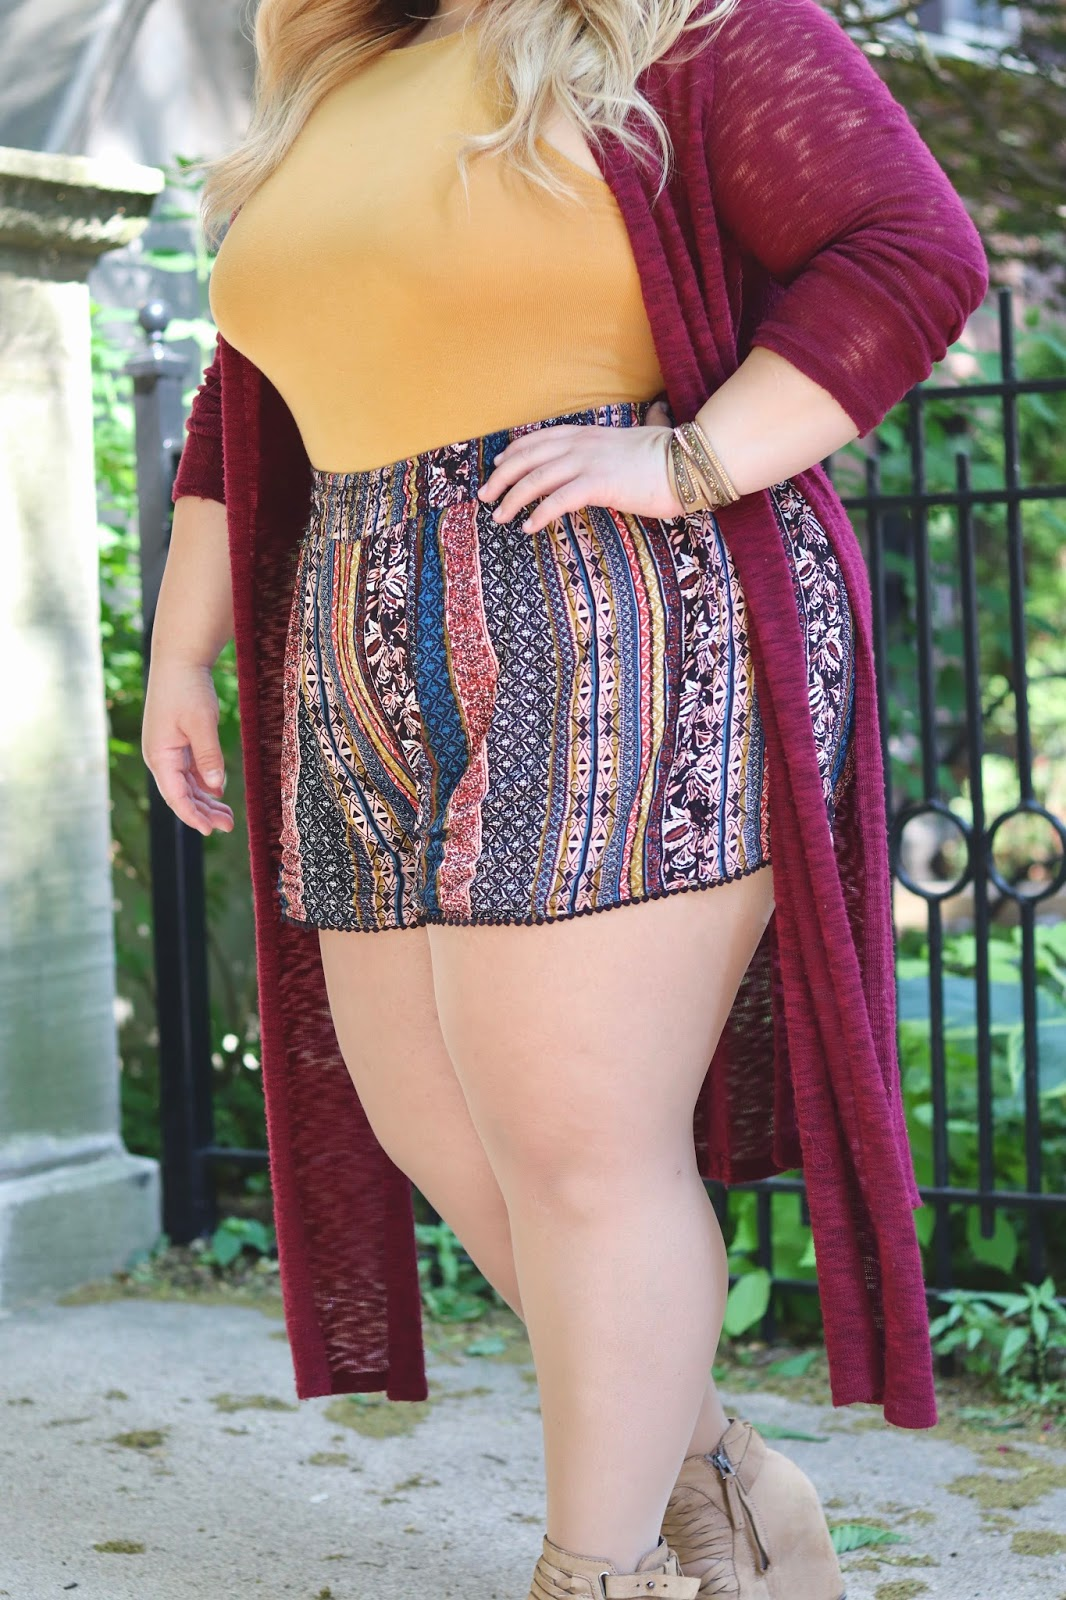 boho chic, plus size shorts, affordable plus size clothes, natalie craig, natalie in the city, Chicago fashion blogger, plus size blogger, Chicago plus size, fatshion, curves and confidence, midwest style, plus size summer outfits, how to stop chub rub, chub rub, stitch fix, forever 21 plus, bodysuits, plus size bodysuits